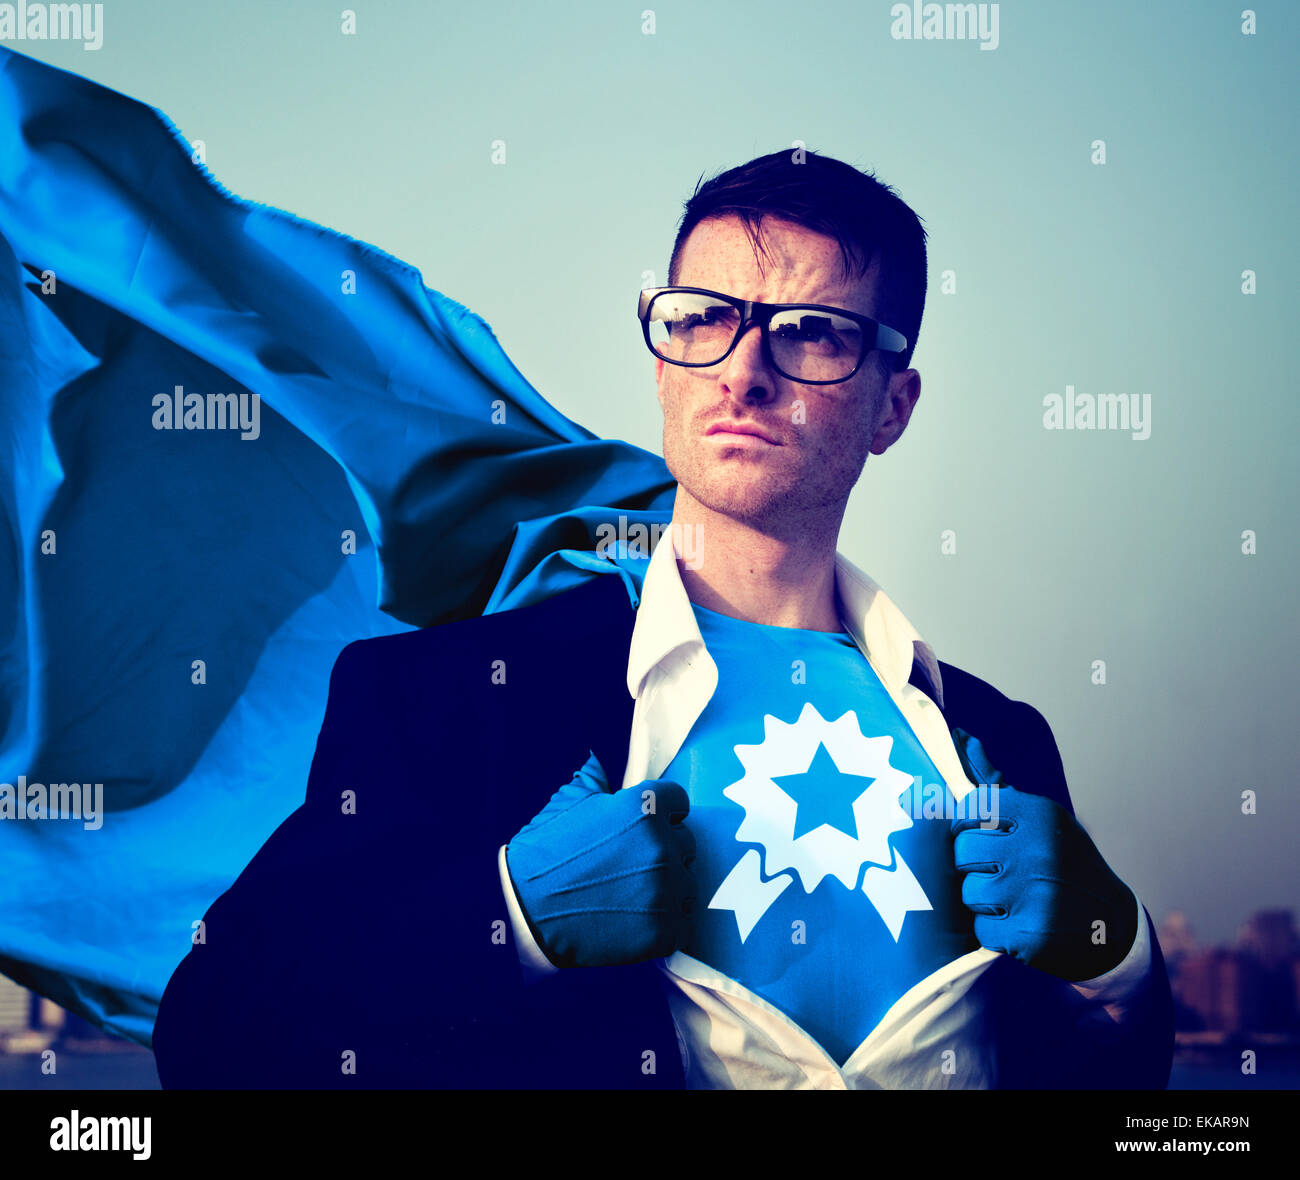 Award Strong Superhero Success Professional Empowerment Stock Concept - Stock Image